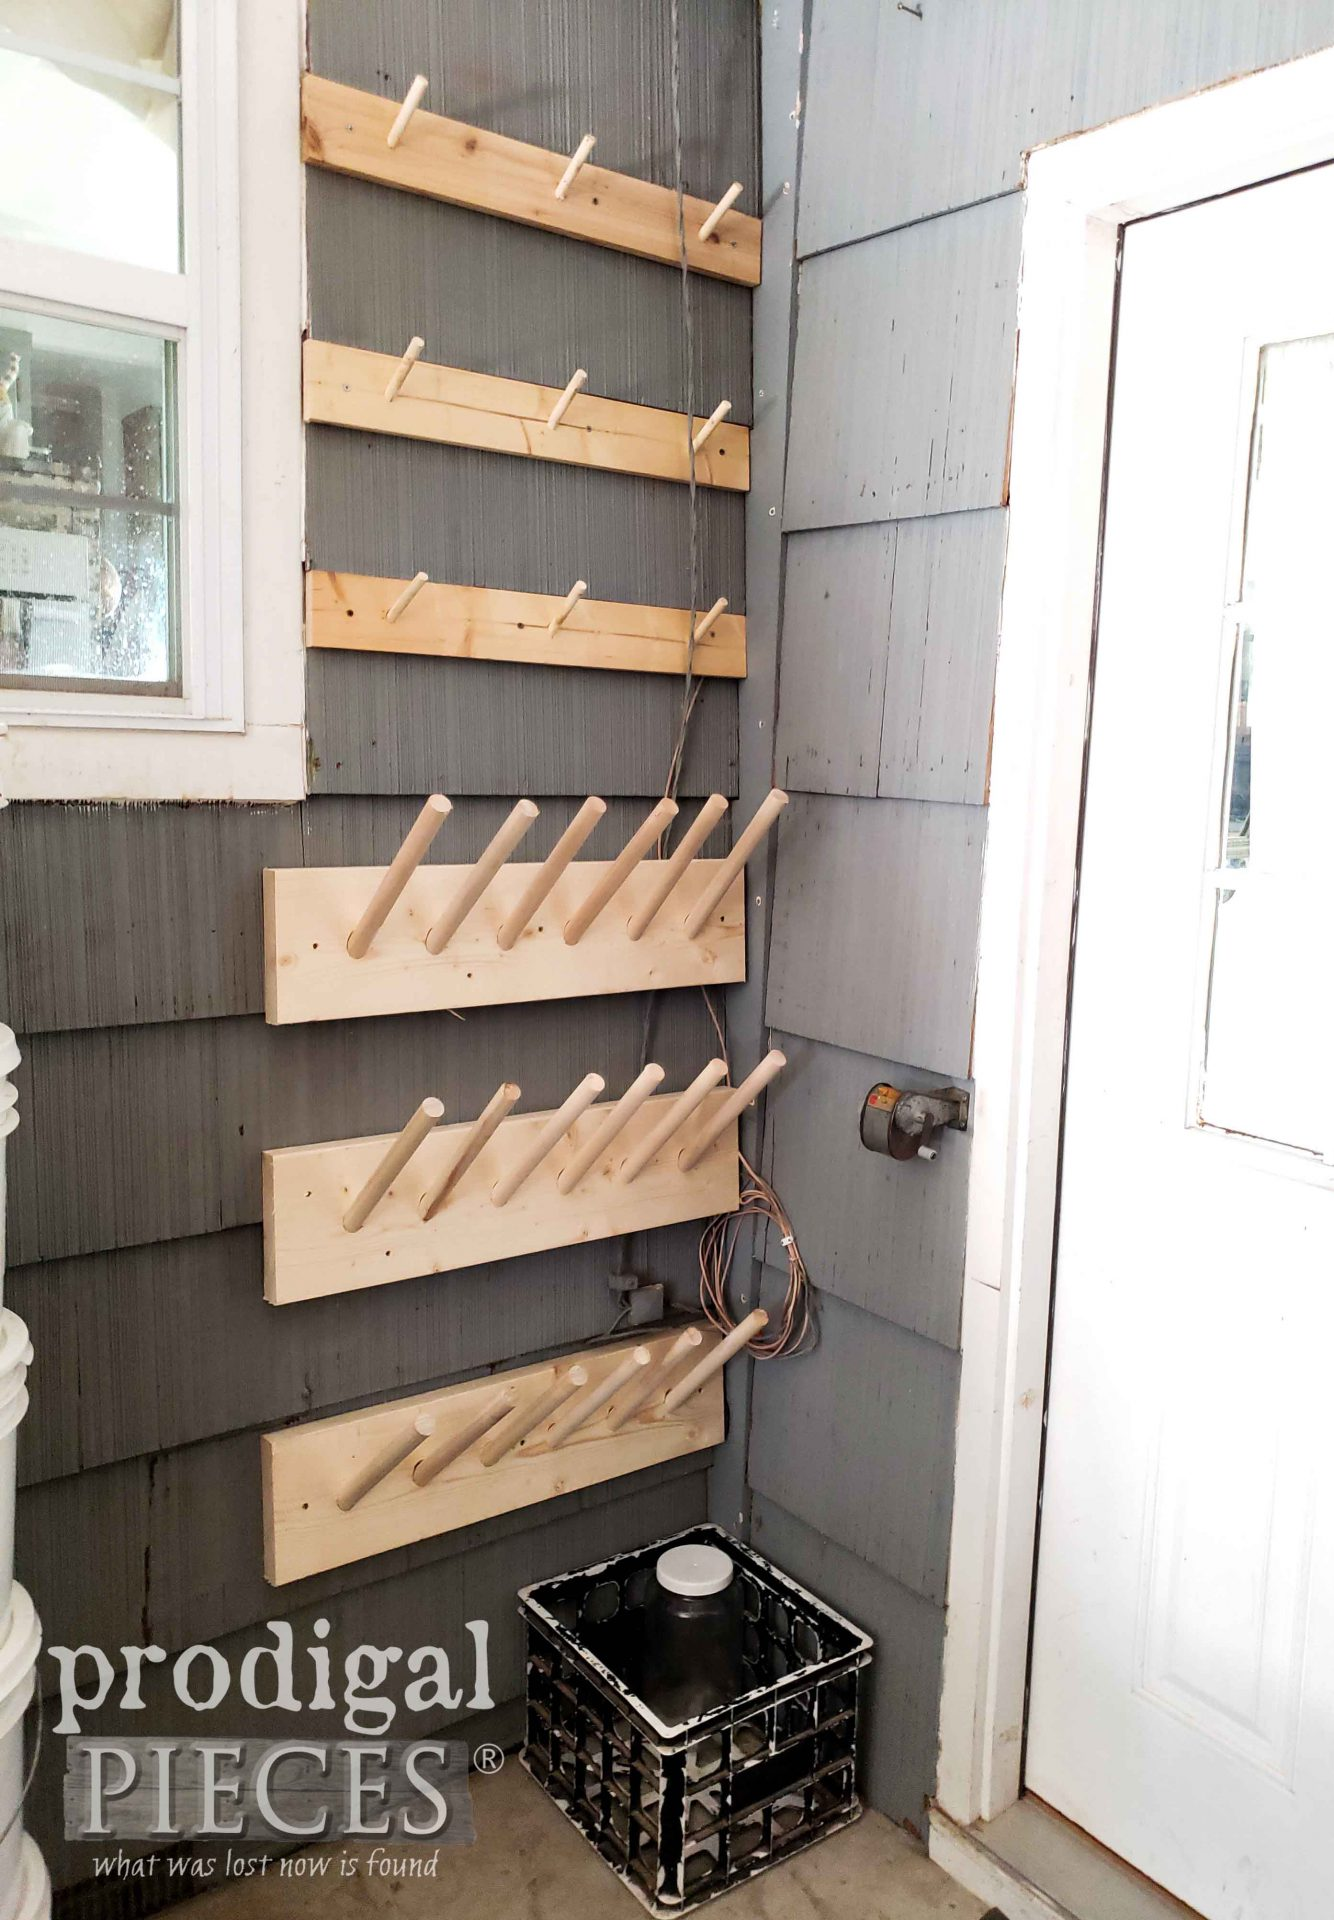 DIY Storage with Boot & Bike Helmet Rack | prodigalpieces.com #prodigalpieces #diy #woodworking #storage #home #homedecor